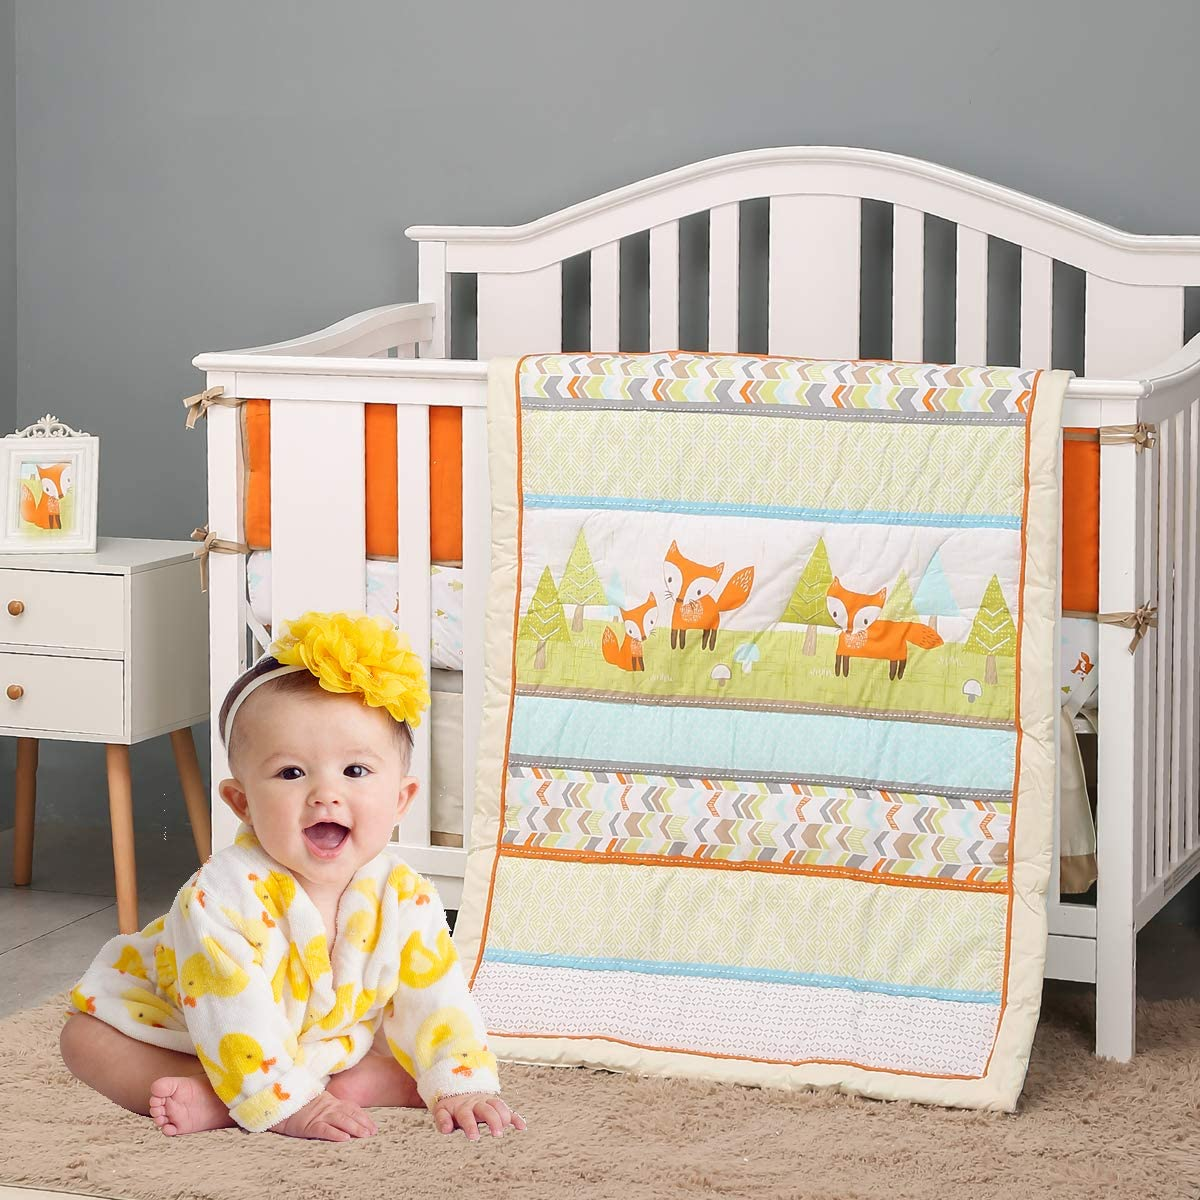 Brandream Year-end gift Playful Fox Crib Bedding Set Girl Boy Baby and for Min Large special price !!